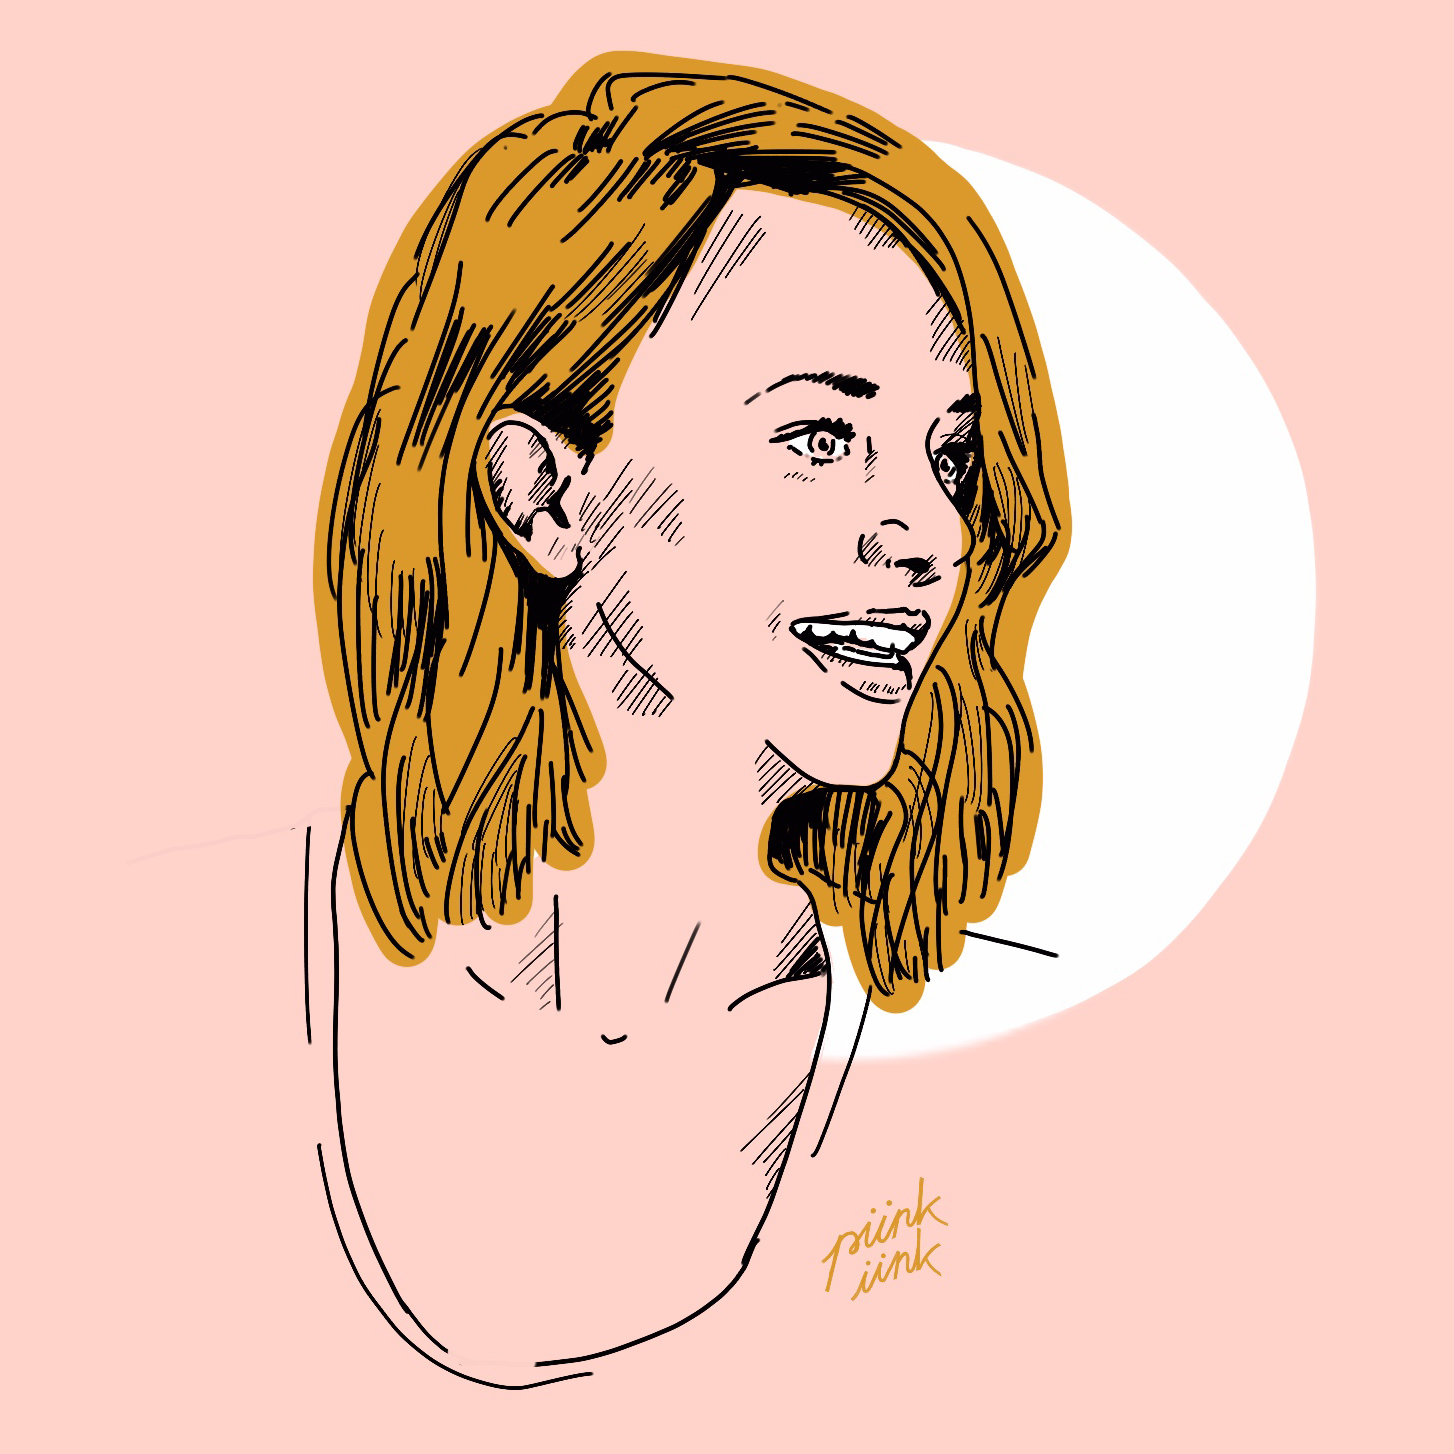 Jenny Boehme Profile Illustration